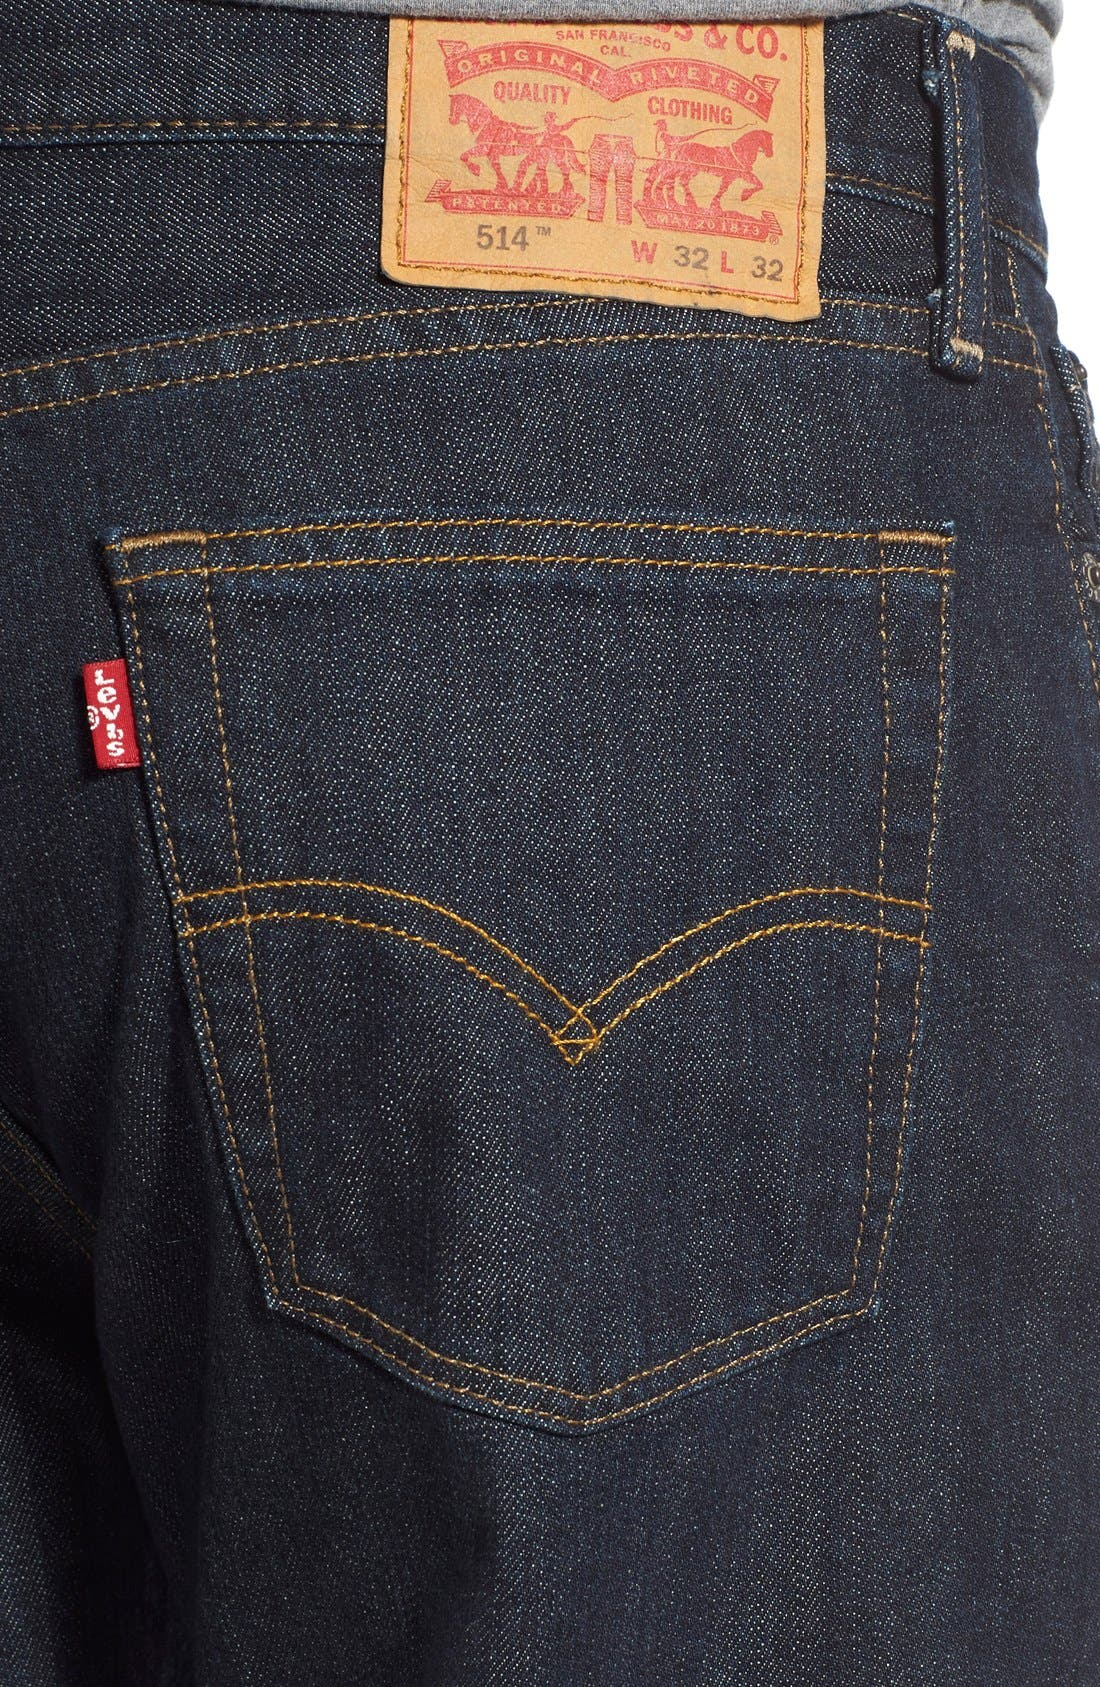 Alternate Image 4  - Levi's® 514™ Straight Leg Jeans (Tumbled Rigid) (Regular & Tall)